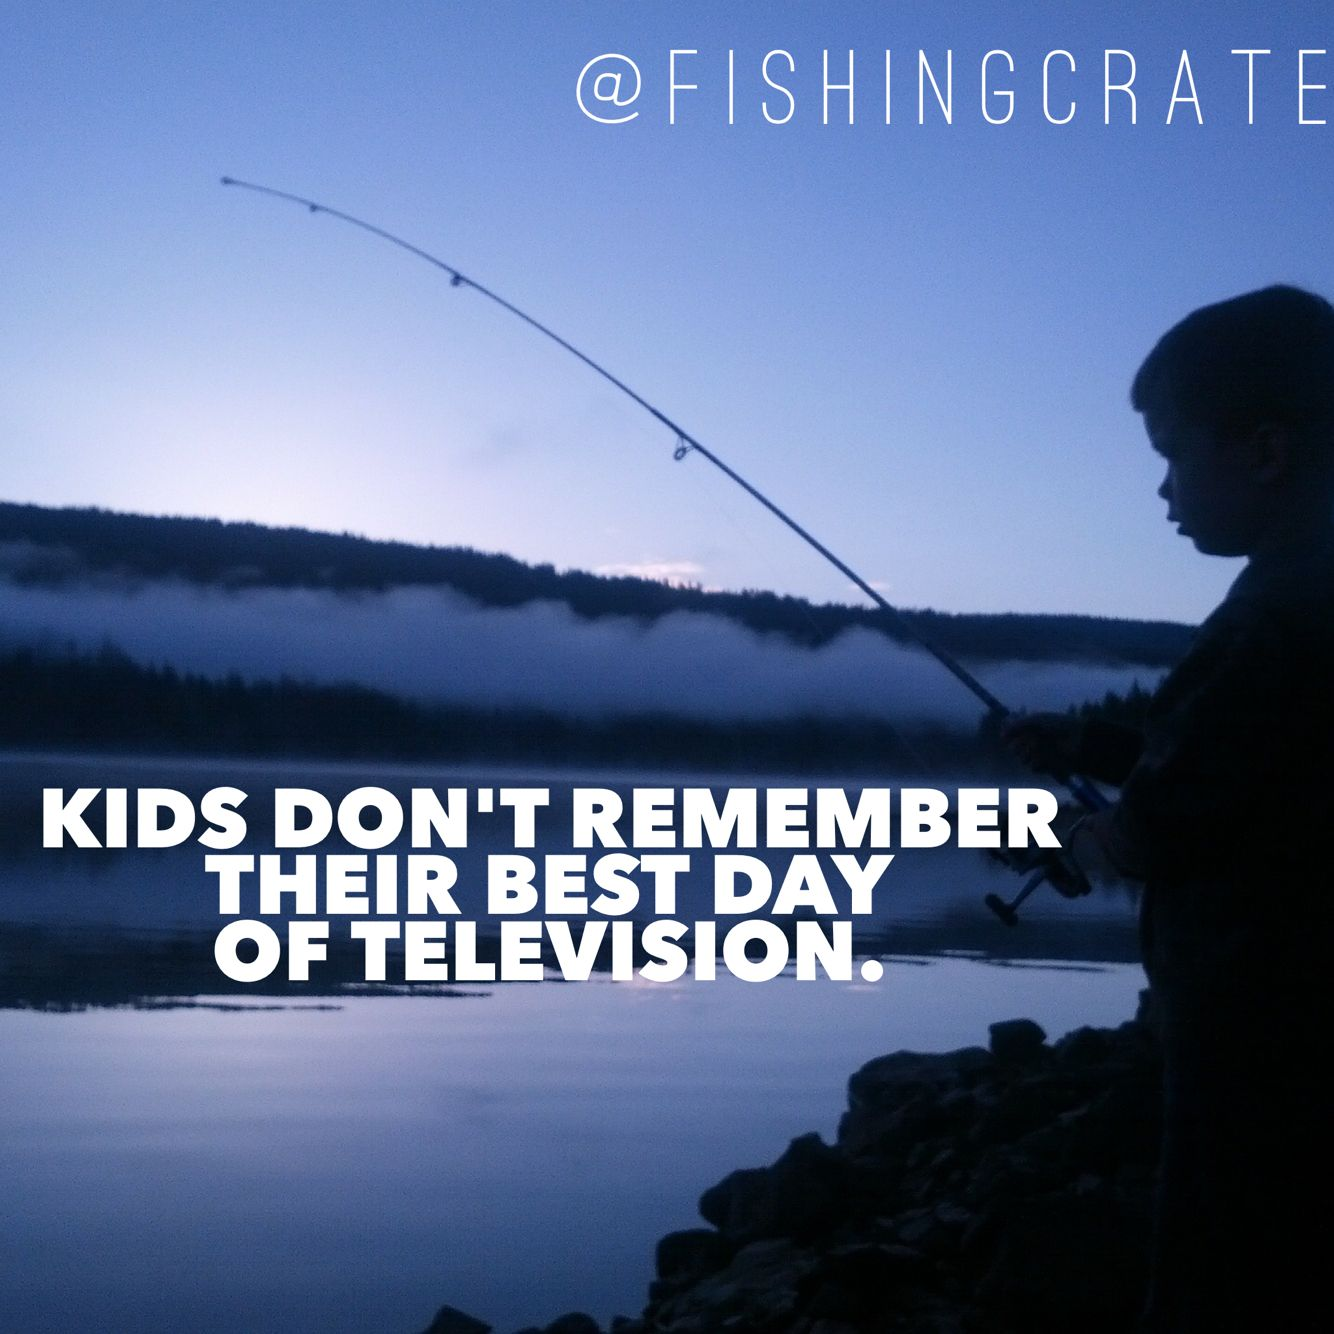 Can you remember you best day of television? Www.fishingcrate.com